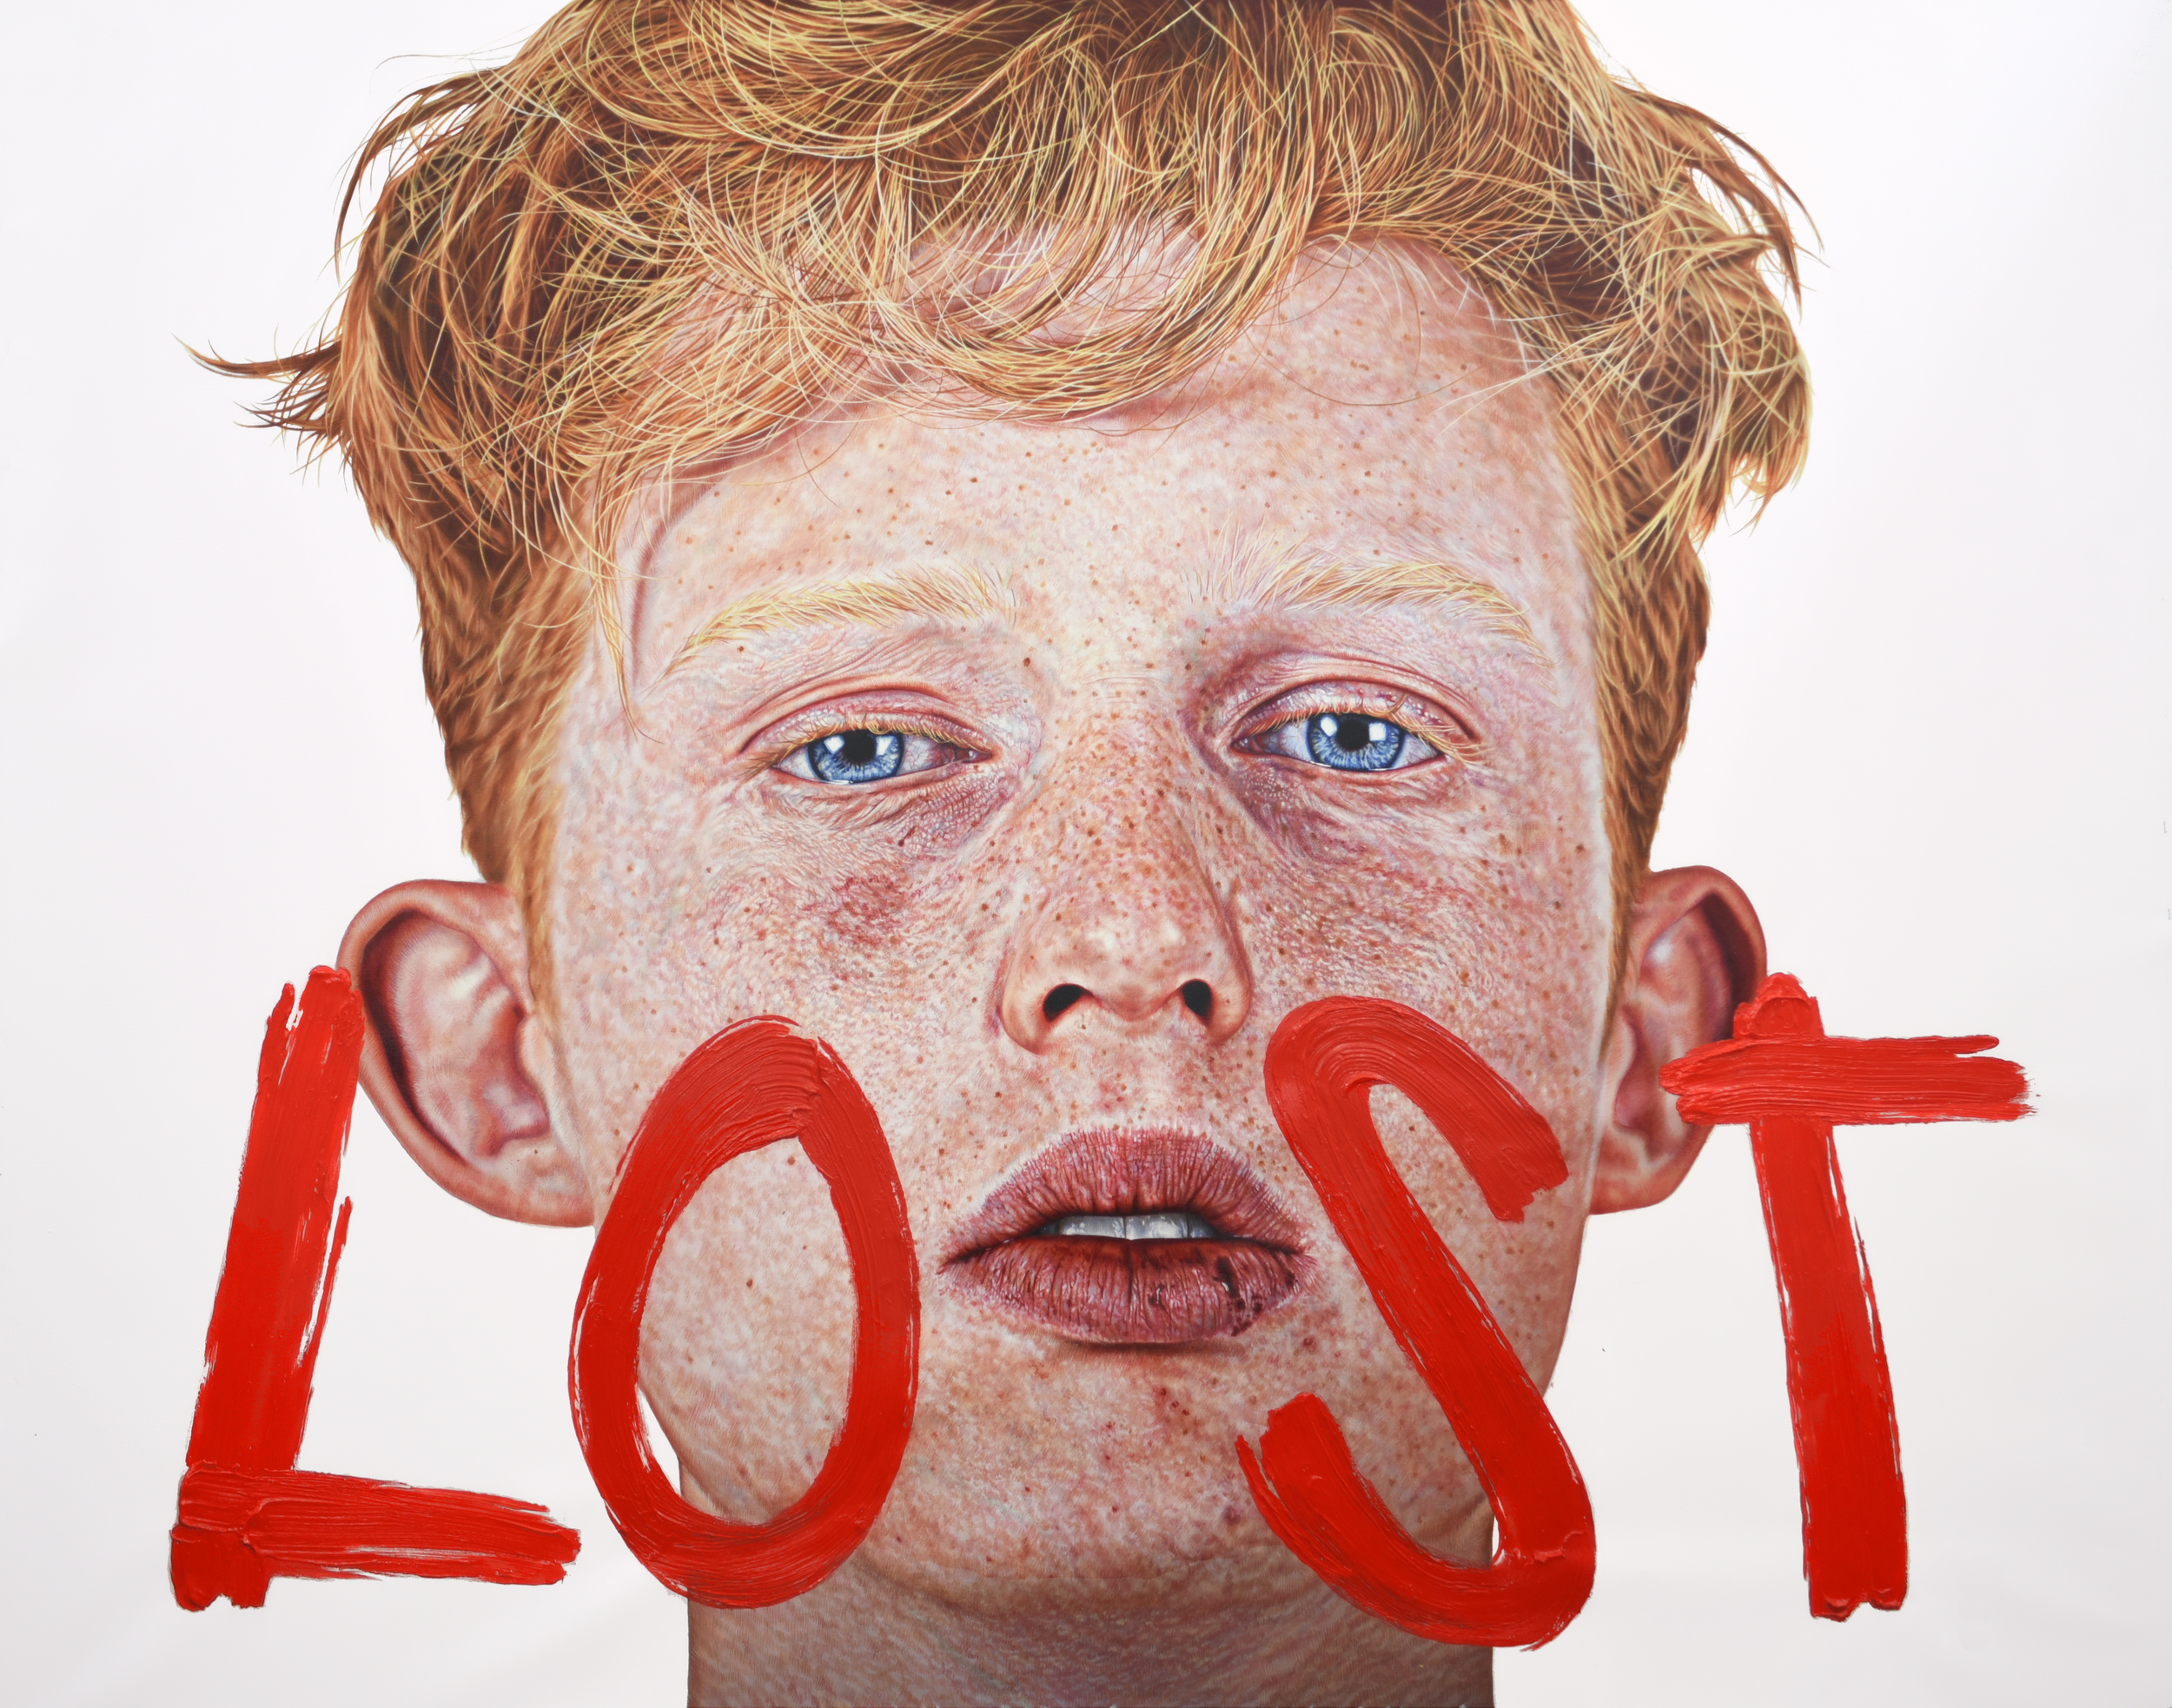 LOST,        2016. Oil paint and egg tempera on canvas.      1  58     x 190 x 6 cm. / 62 1/5 x 74 4/5 x 2 1/3 in.    Private Collection, France.